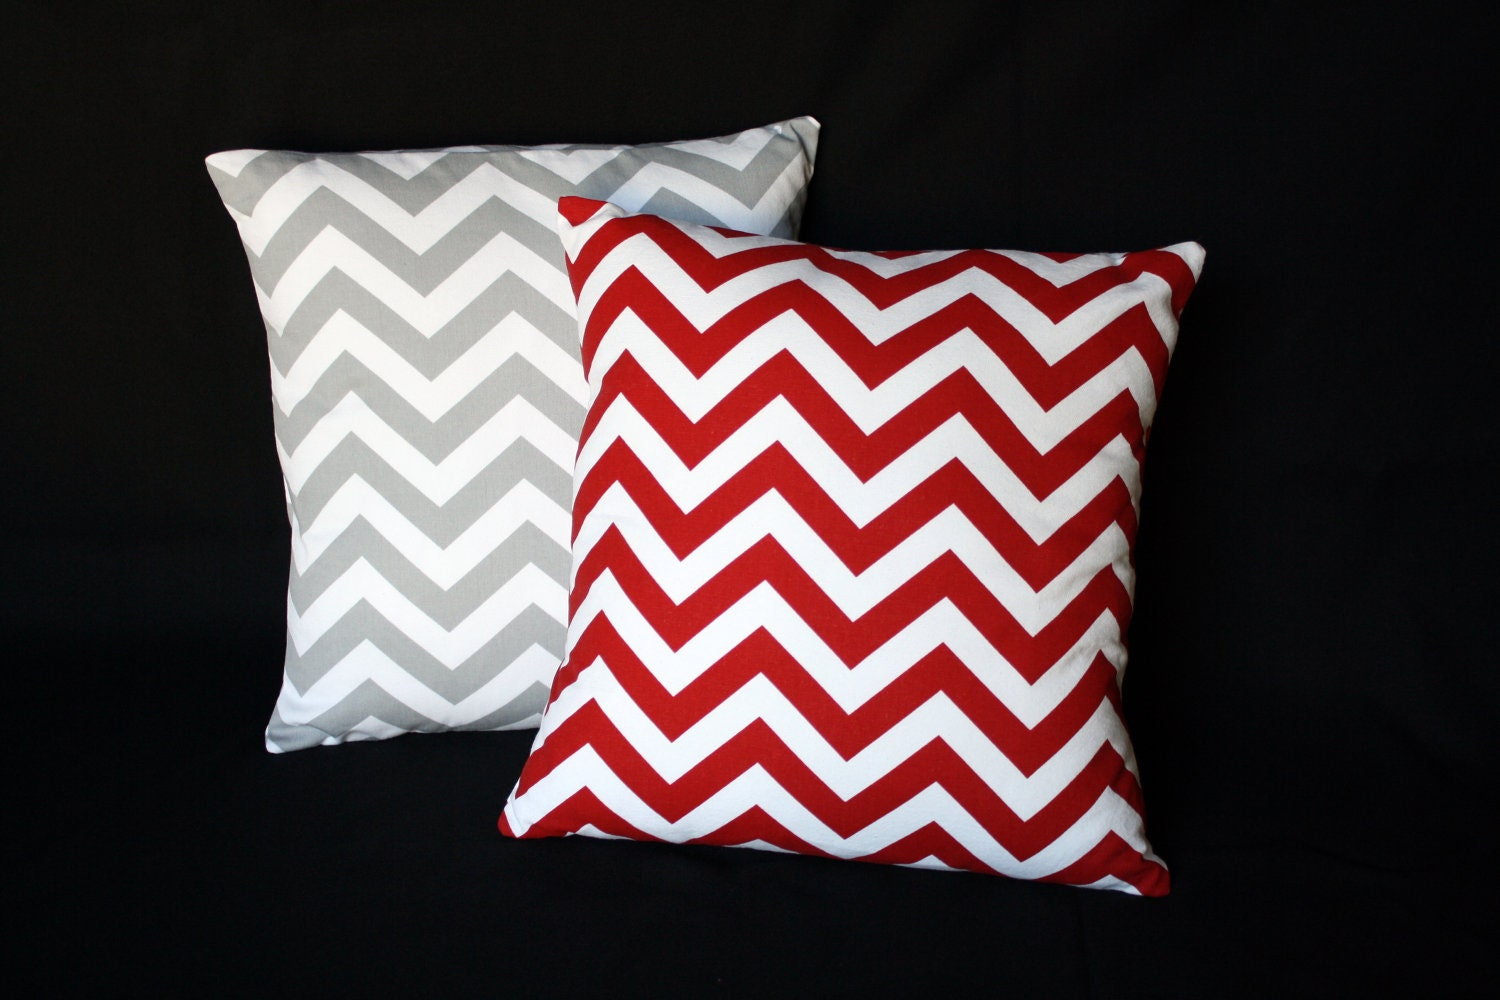 16 in. Red Chevron Throw Pillow Cover